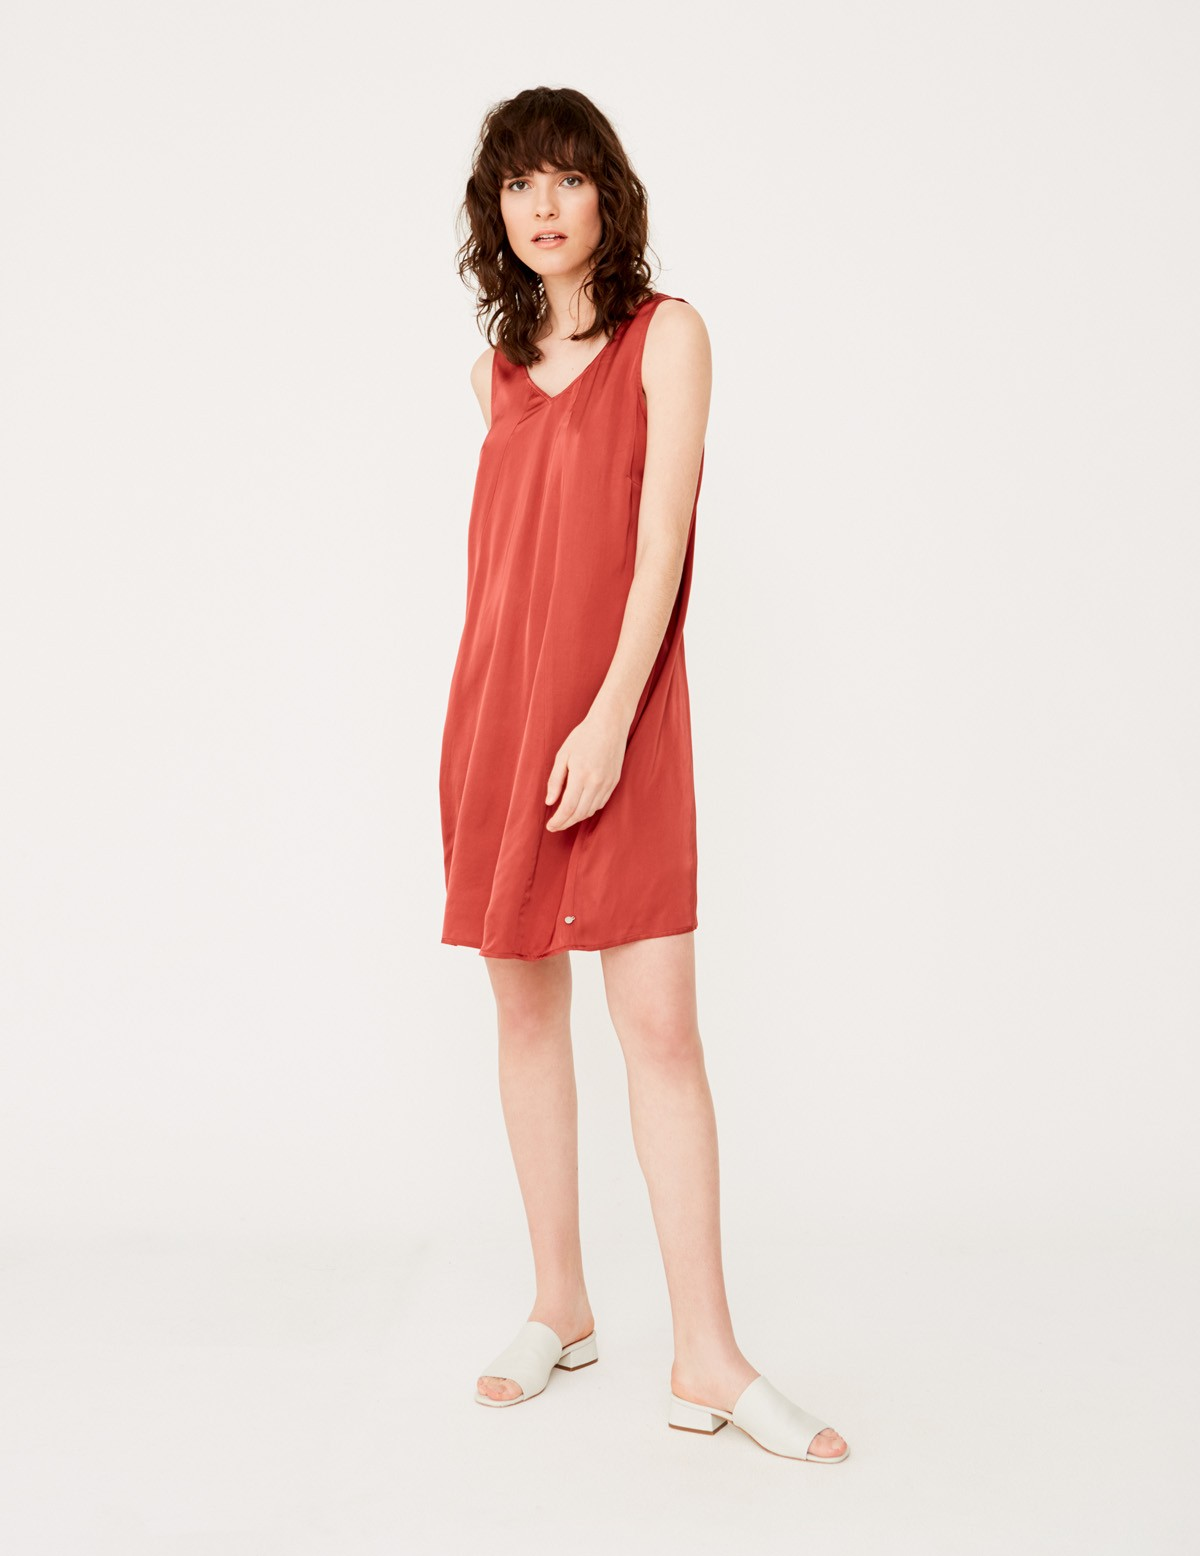 Strap dress with V-neckline